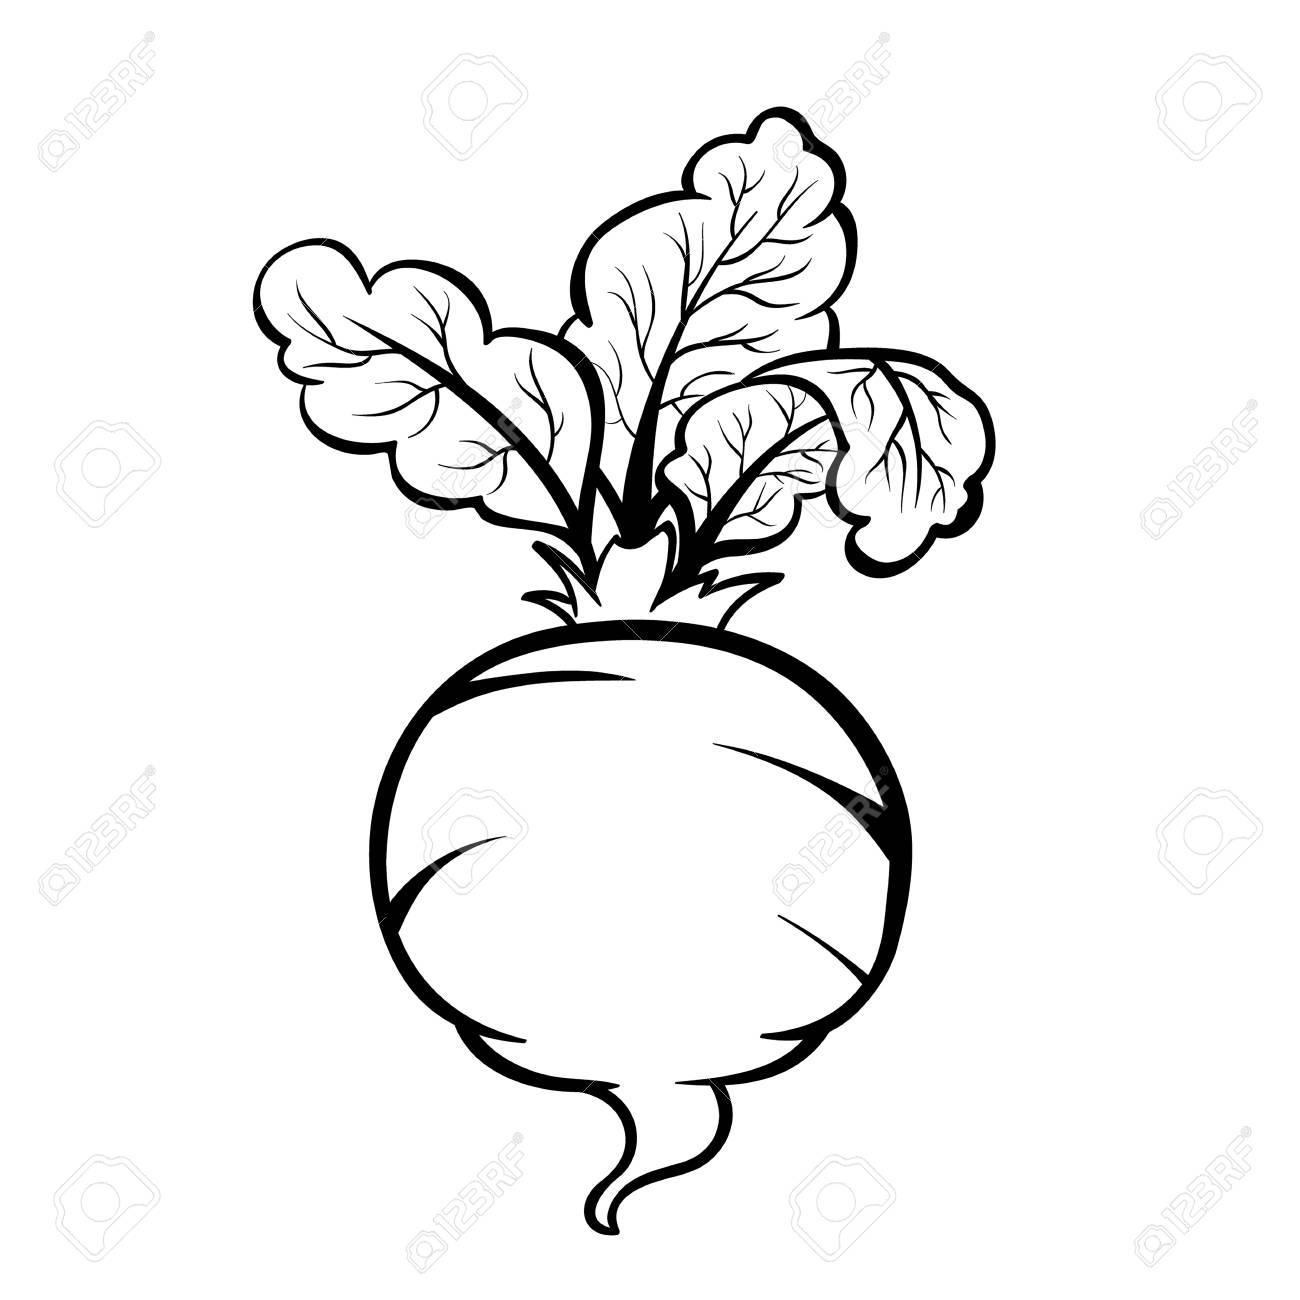 Vector Hand Drawn Illustration Of A Beet Outline Doodle Icon